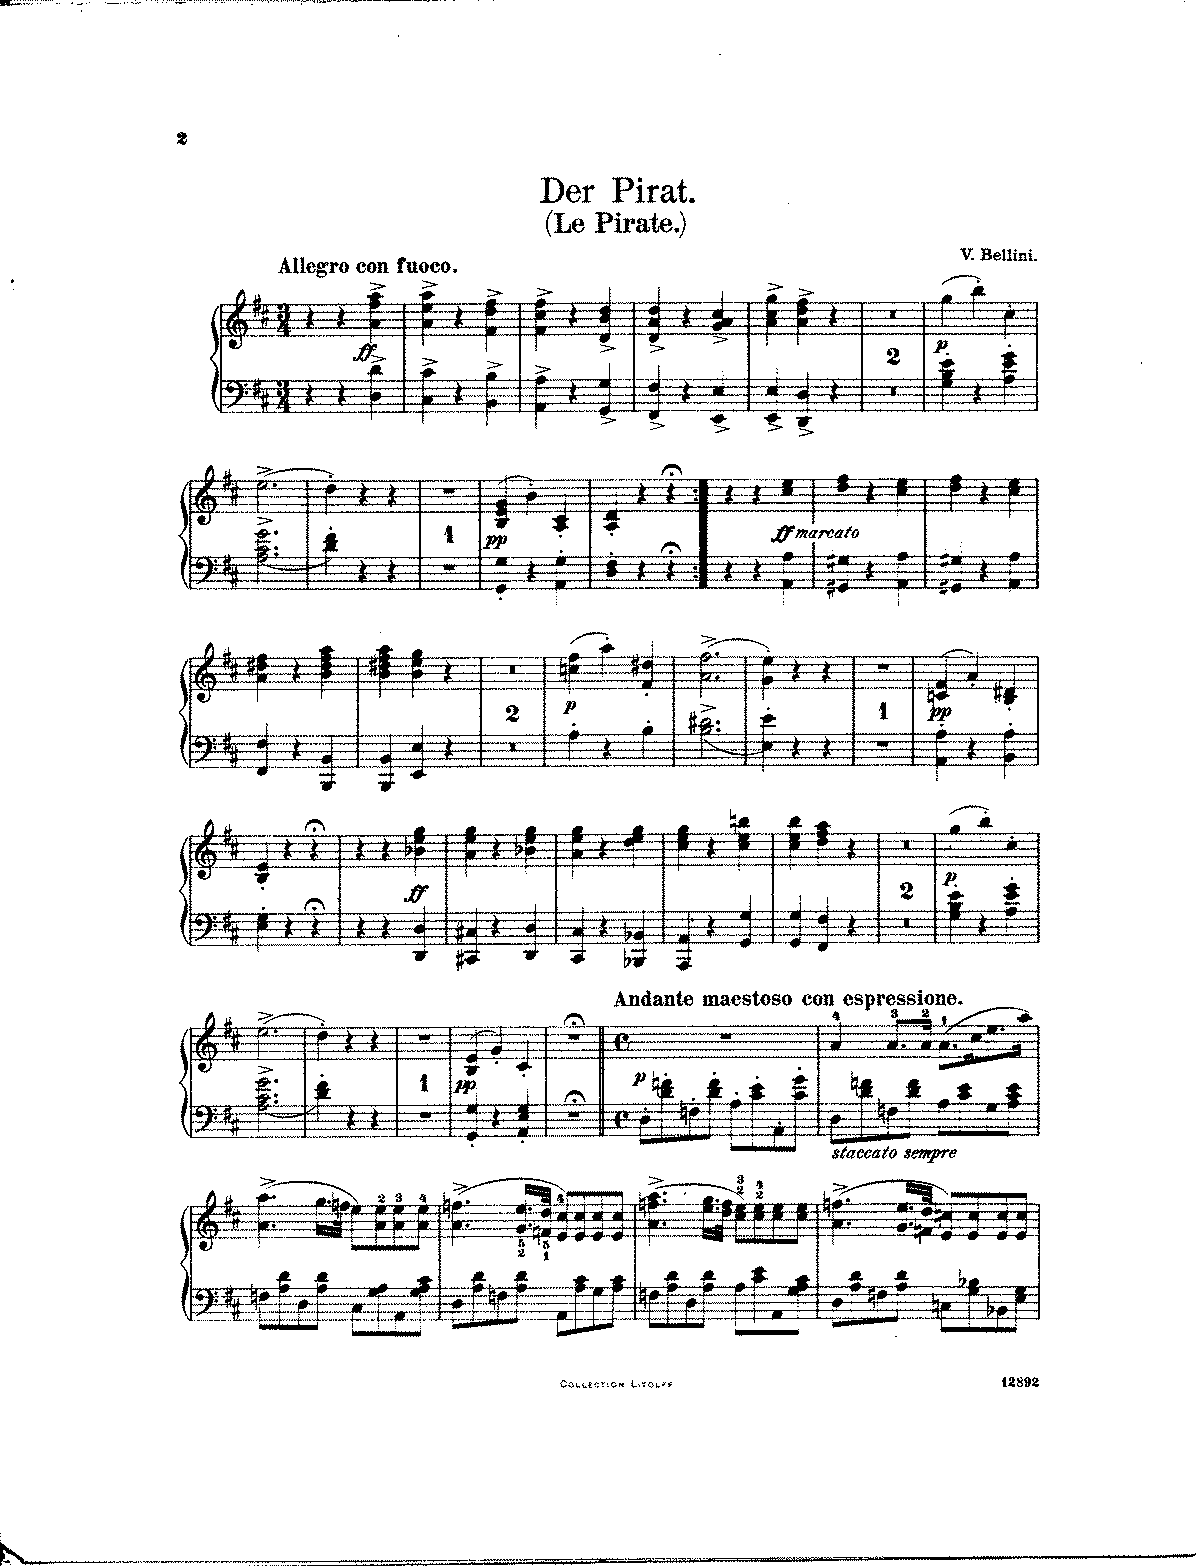 PMLP58186-1128a-Bellini-LePirate-00-Piano.pdf